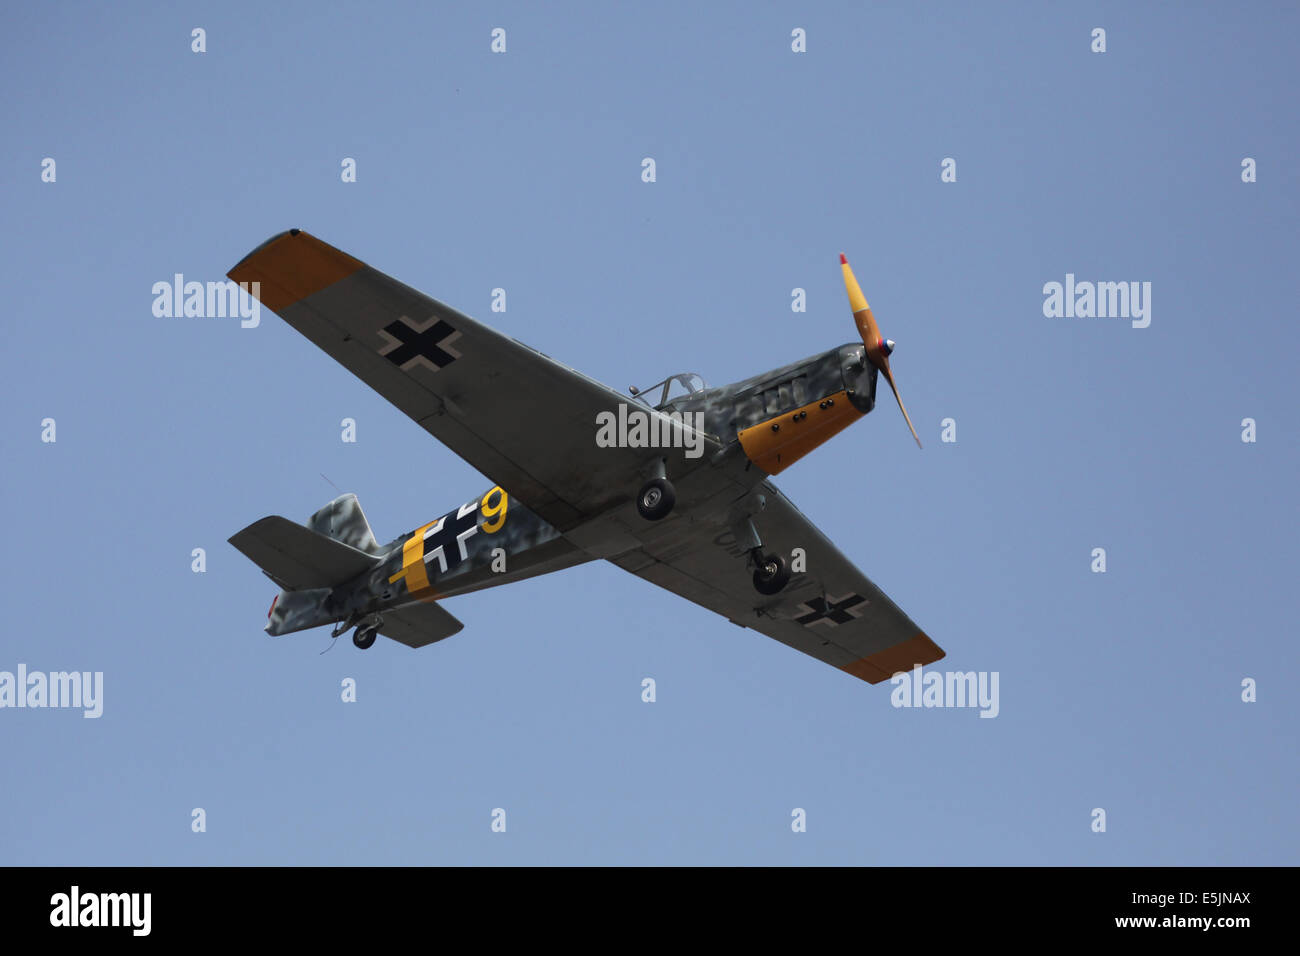 Zlin 226MS aircraft painted in colors of German Luftwaffe. - Stock Image